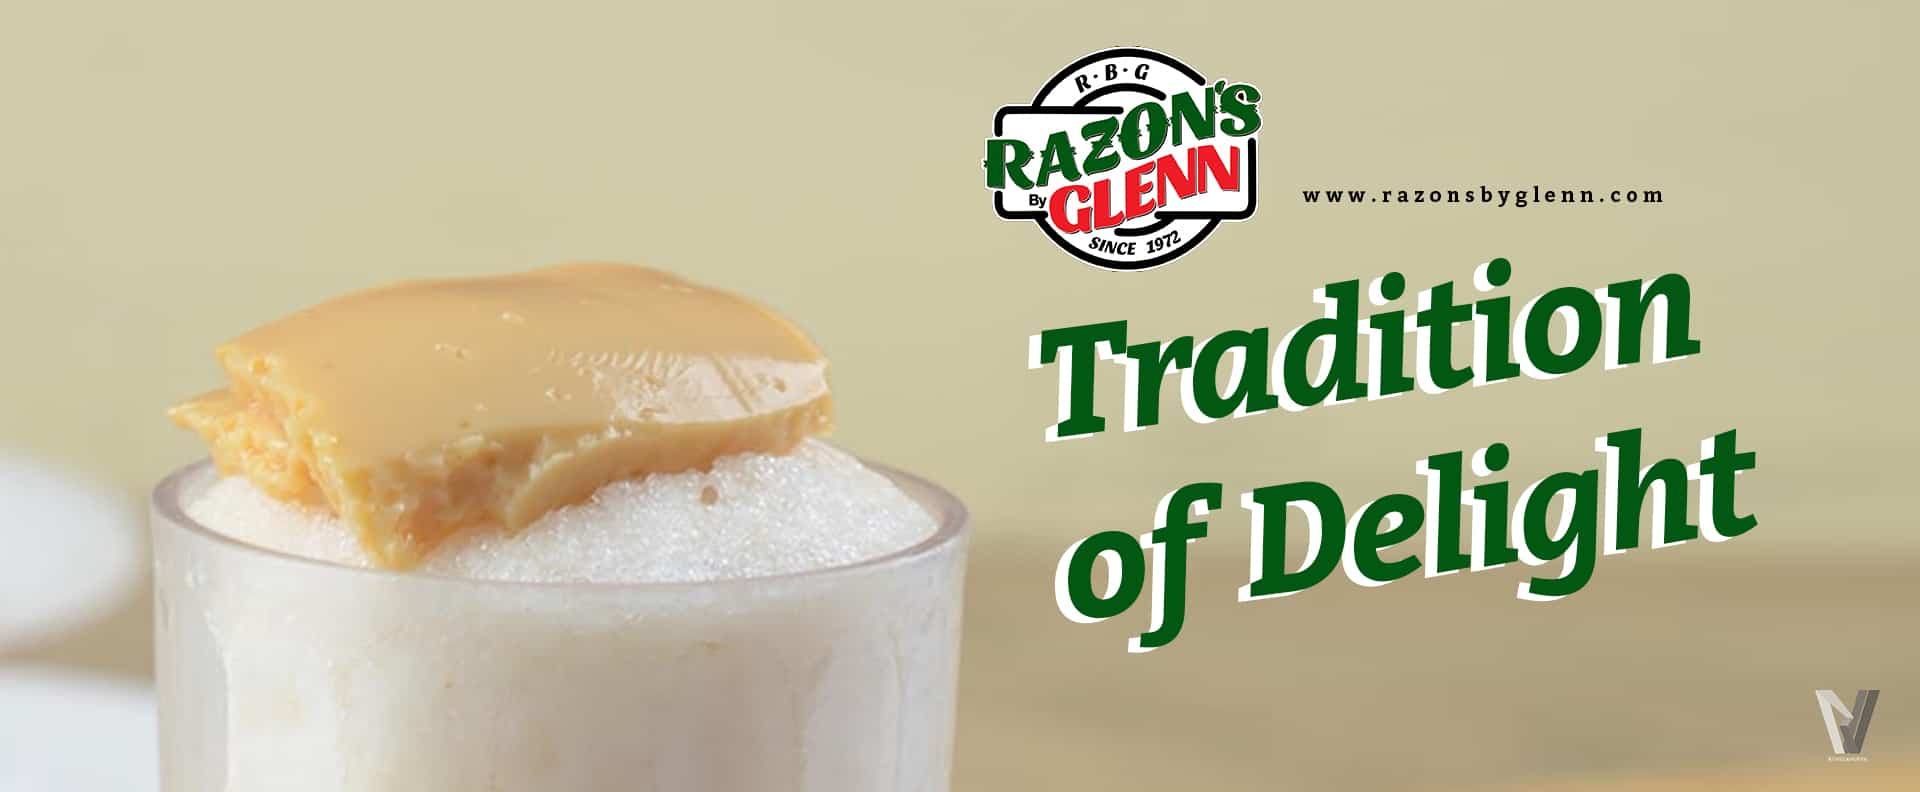 Razon's by Glenn - The Tradition of Customer Delight